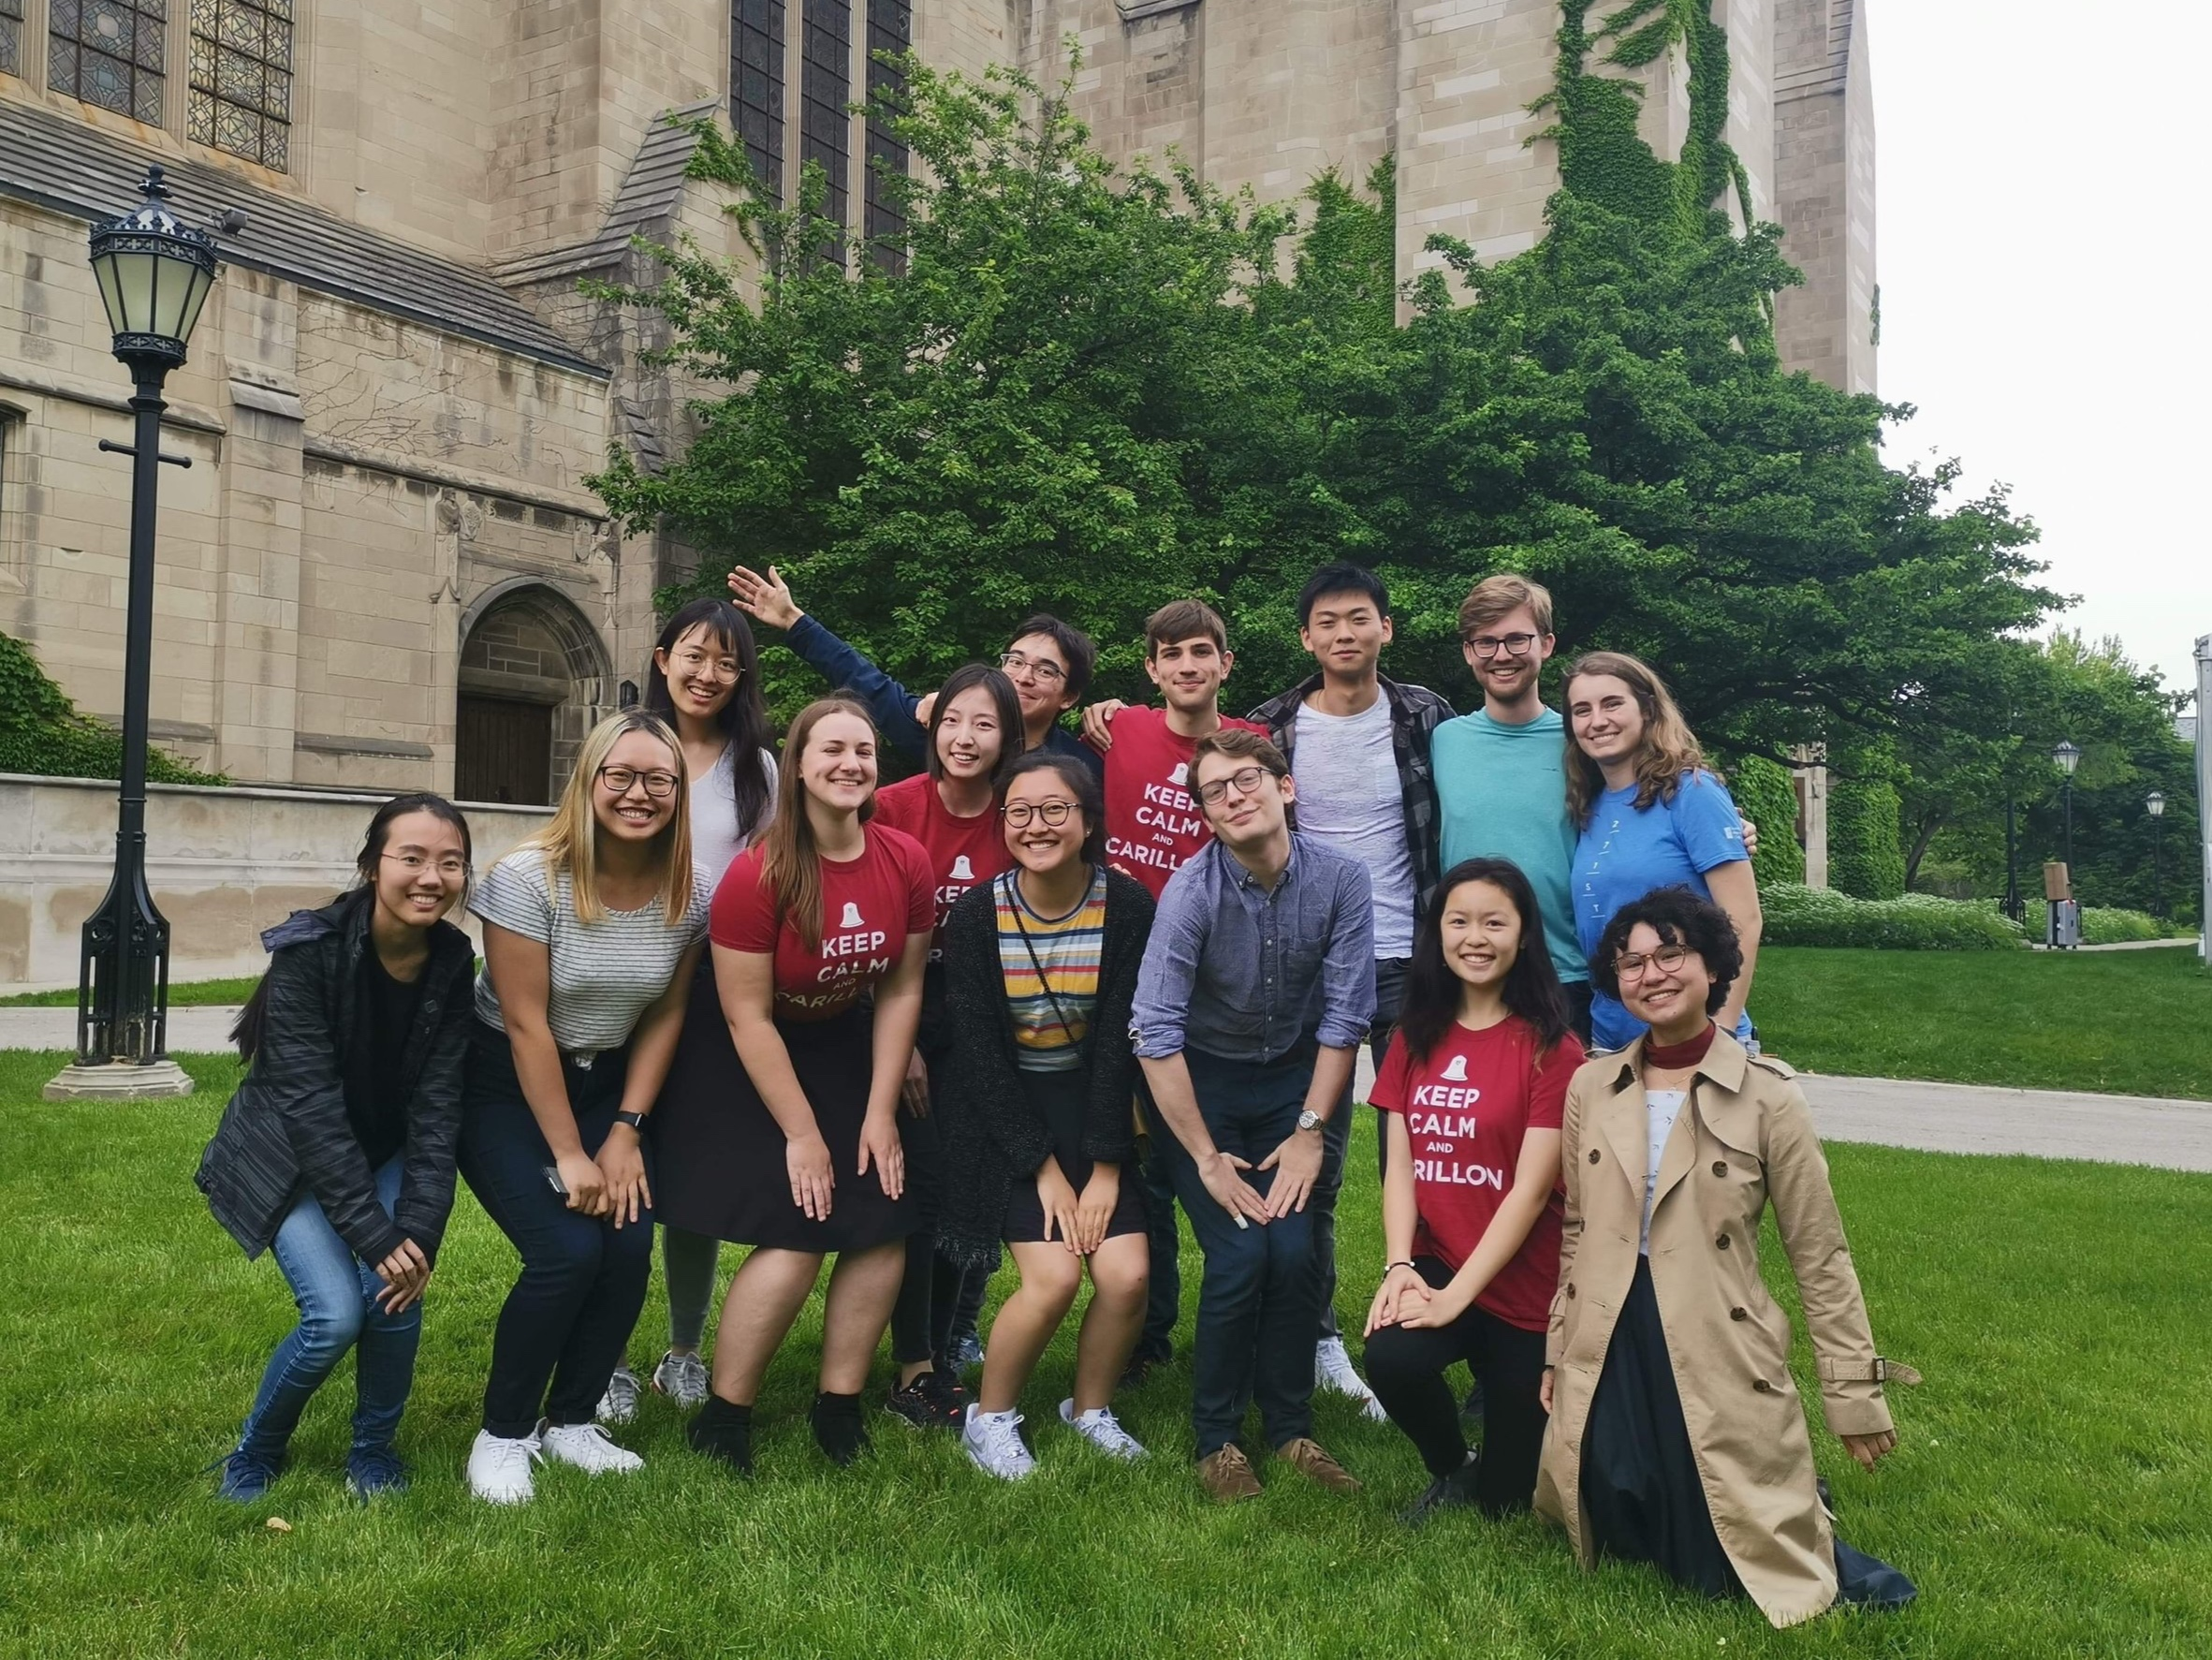 UChicago Carillon Students. Photo credit: Joey Brink